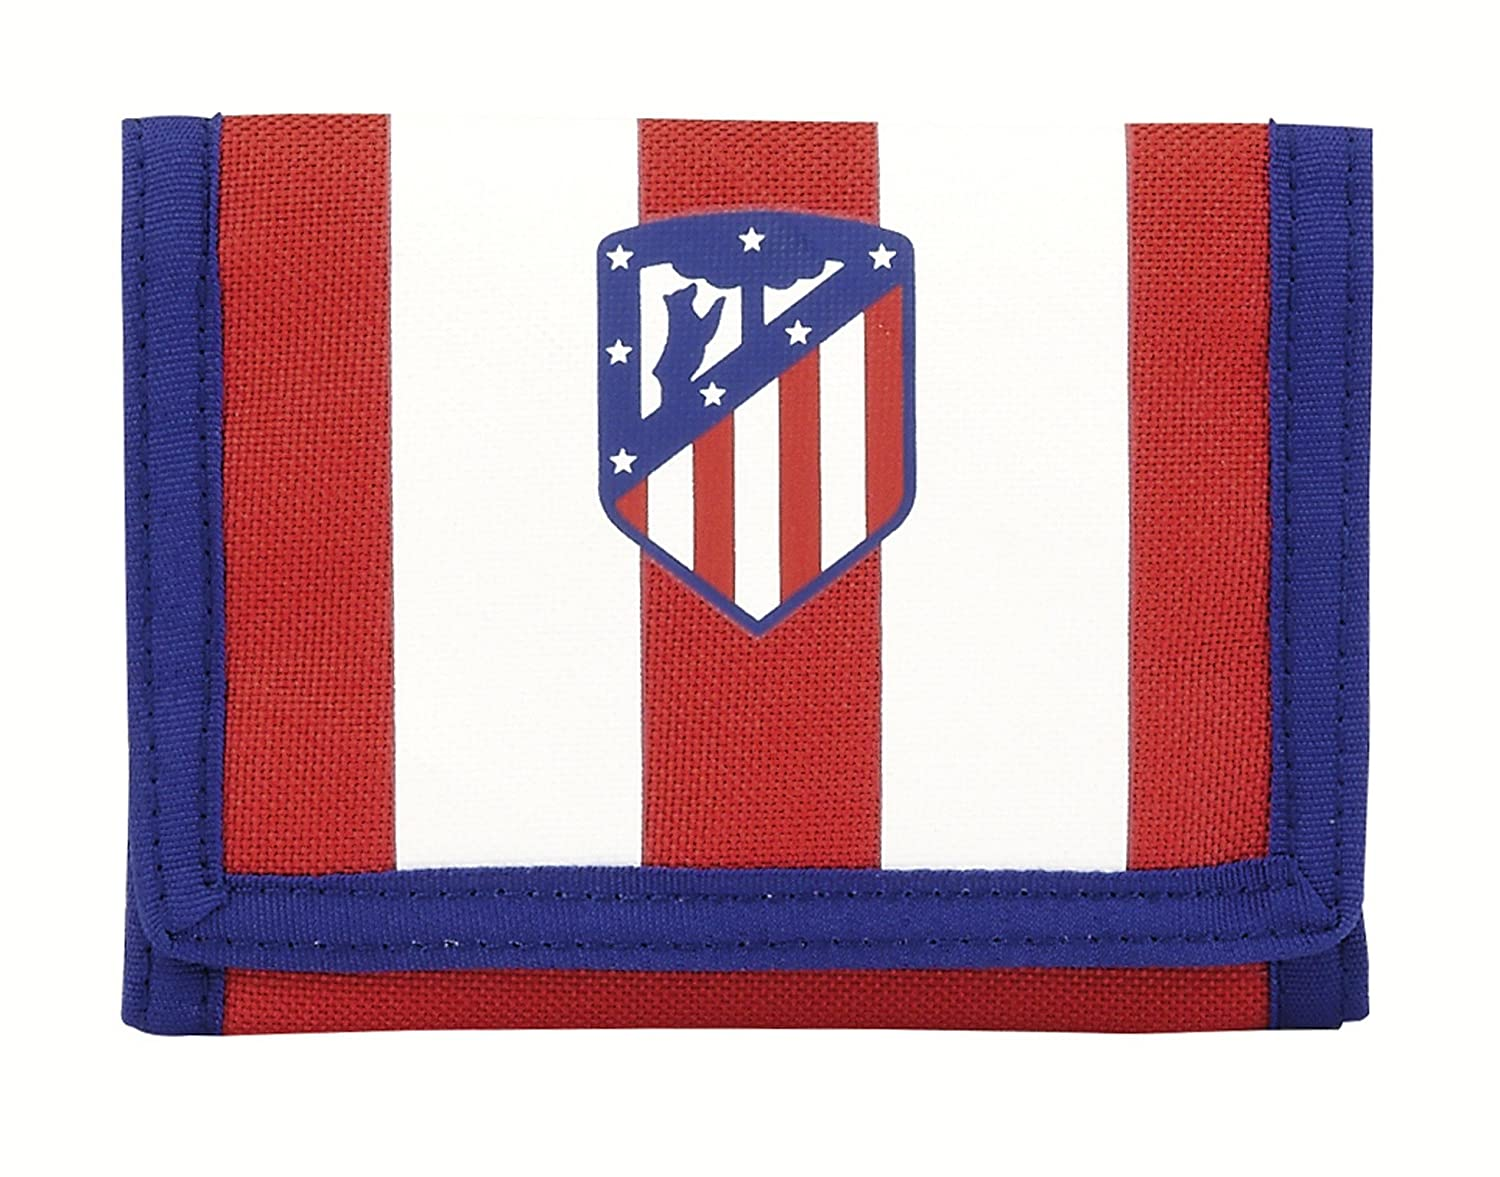 Atletico De Madrid Billetera de atletico de madrid Safta